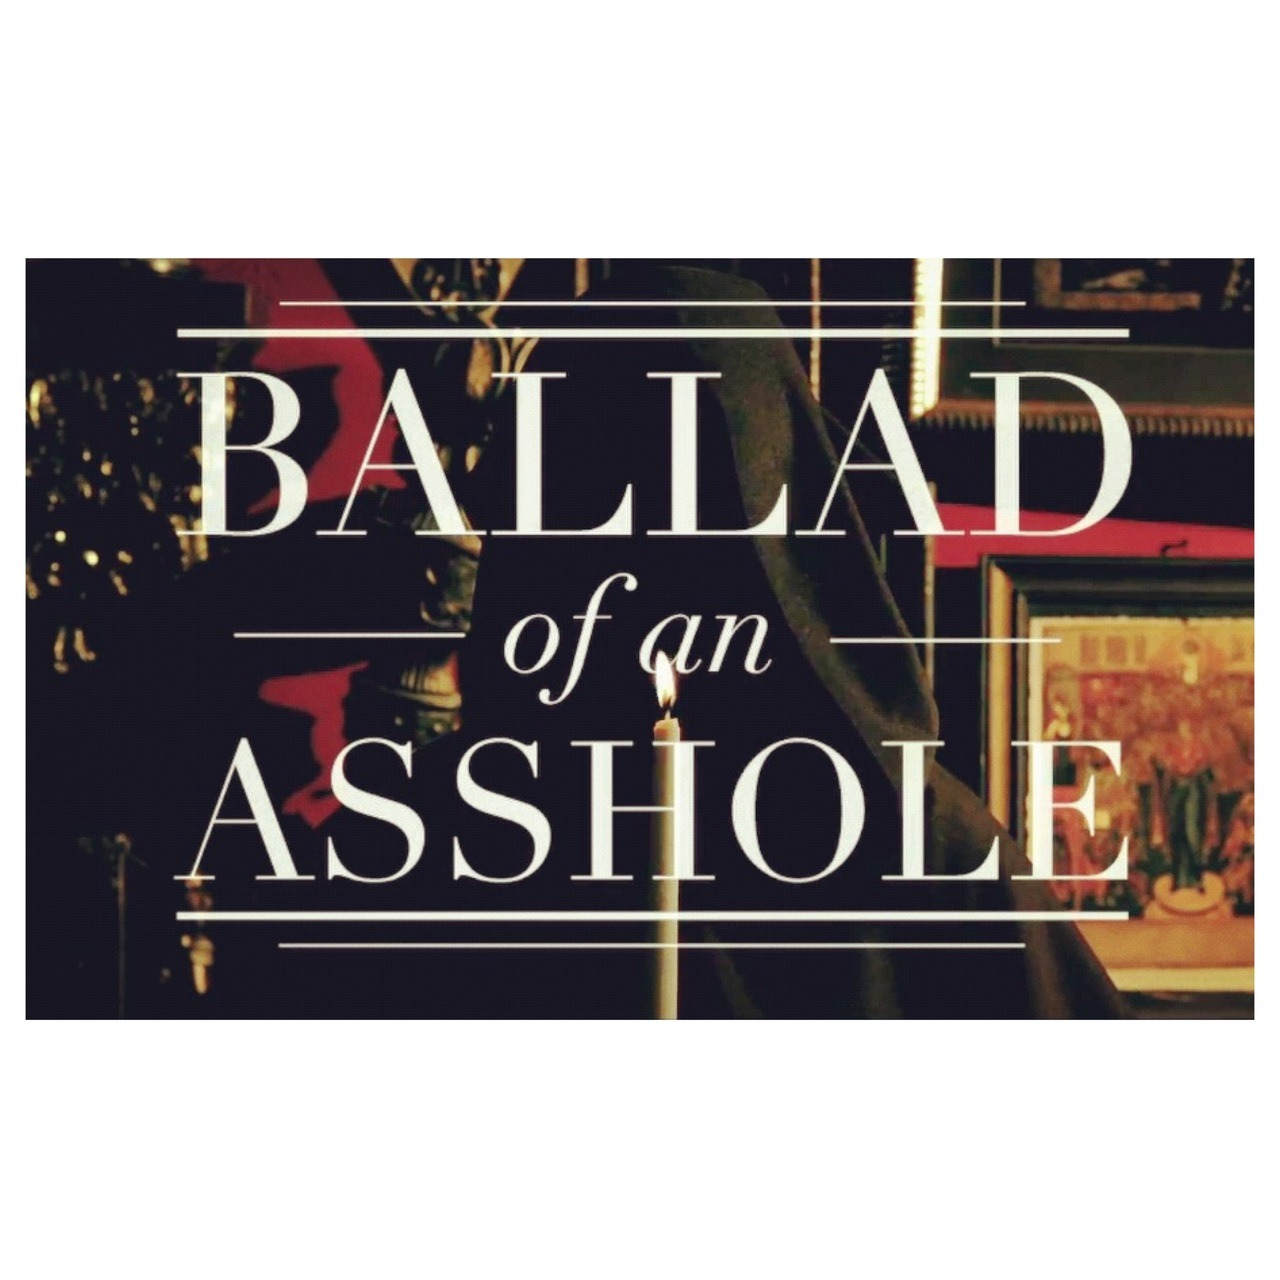 "The video for D-WHY's ""Ballad Of An Asshole"" (Prod. by Hit-Boy) will be released this Thursday, Oct. 11th, at 3pm EST / 12pm PST. Directed by D-WHY & Jakob Owens. Shot & Edited by Jakob Owens. —- Listen & Download D-WHY's debut free album at DontFlatterYourself.com"